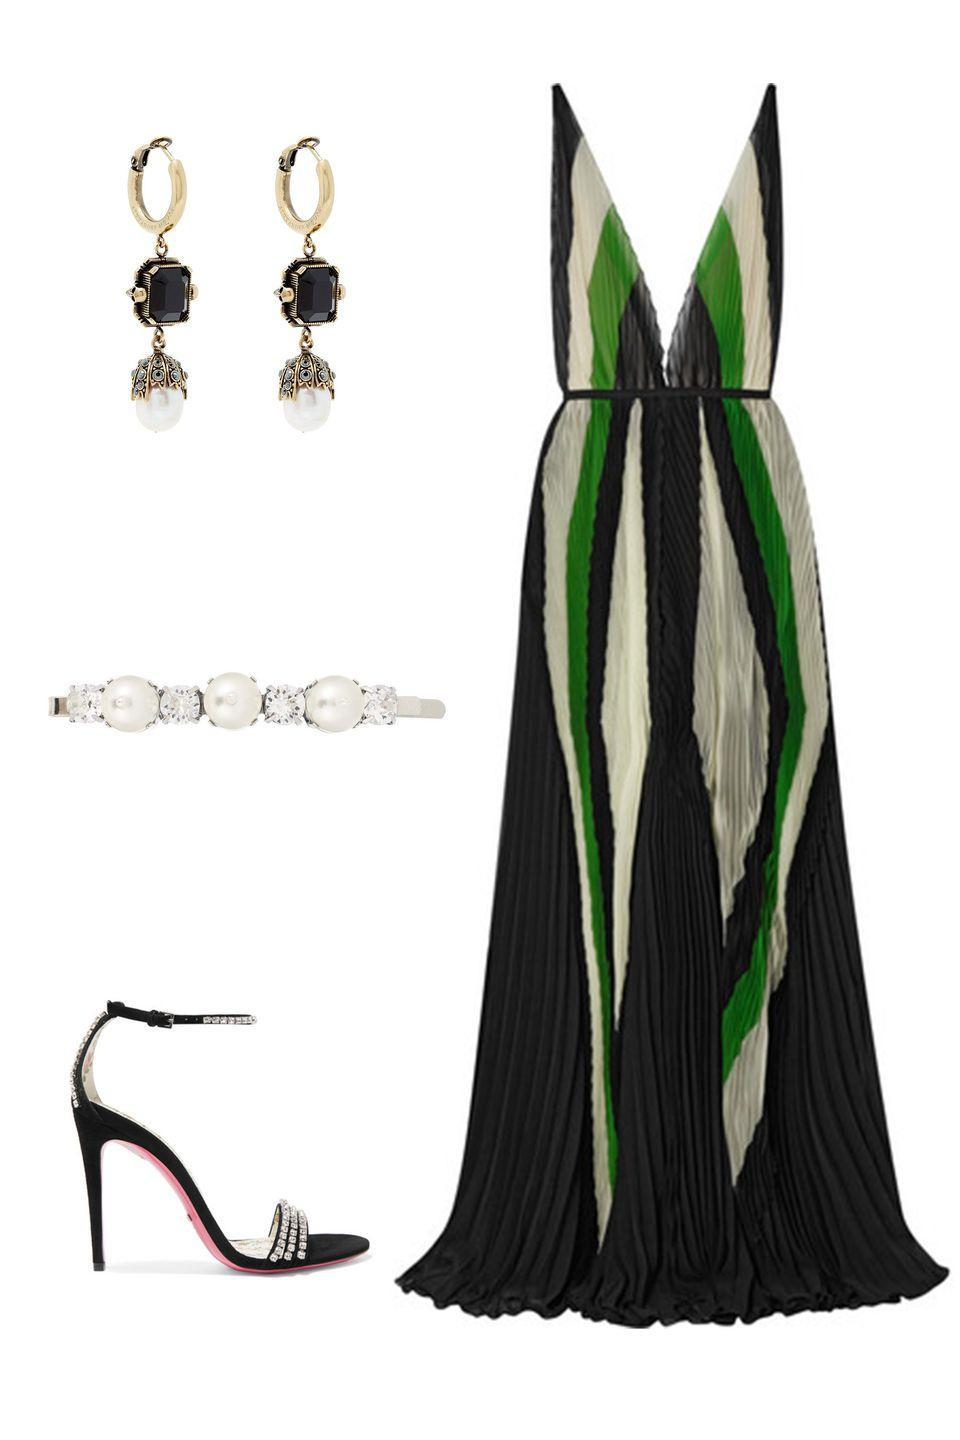 """<p>Pops of bold color and an emphasis on open necklines and backs separates the feeling of black tie dressing for the fall from winter. </p><p><em><strong>Tre</strong> gown, $2,500, <a rel=""""nofollow noopener"""" href=""""https://www.net-a-porter.com/us/en/product/1073136/tre/art-deco-plisse-silk-chiffon-gown"""" target=""""_blank"""" data-ylk=""""slk:net-a-porter.com"""" class=""""link rapid-noclick-resp"""">net-a-porter.com</a>; <strong>Gucci </strong>suede sandals, $1,250,<a rel=""""nofollow noopener"""" href=""""https://www.net-a-porter.com/us/en/product/942142/gucci/isle-crystal-embellished-suede-sandals"""" target=""""_blank"""" data-ylk=""""slk:netaporter.com"""" class=""""link rapid-noclick-resp"""">netaporter.com</a>; <strong>Alexander McQueen </strong>earrings, $980, <a rel=""""nofollow noopener"""" href=""""https://www.matchesfashion.com/products/Alexander-McQueen-Onyx-and-pearl-drop-earrings-1217945"""" target=""""_blank"""" data-ylk=""""slk:matchesfashion.com"""" class=""""link rapid-noclick-resp"""">matchesfashion.com</a>; <strong>Simone Rocha </strong>hair clip, $160, <a rel=""""nofollow noopener"""" href=""""https://www.mytheresa.com/en-de/simone-rocha-crystal-embellished-hair-clip-927518.html?catref=category"""" target=""""_blank"""" data-ylk=""""slk:mythereasa.com"""" class=""""link rapid-noclick-resp"""">mythereasa.com</a>.</em></p>"""